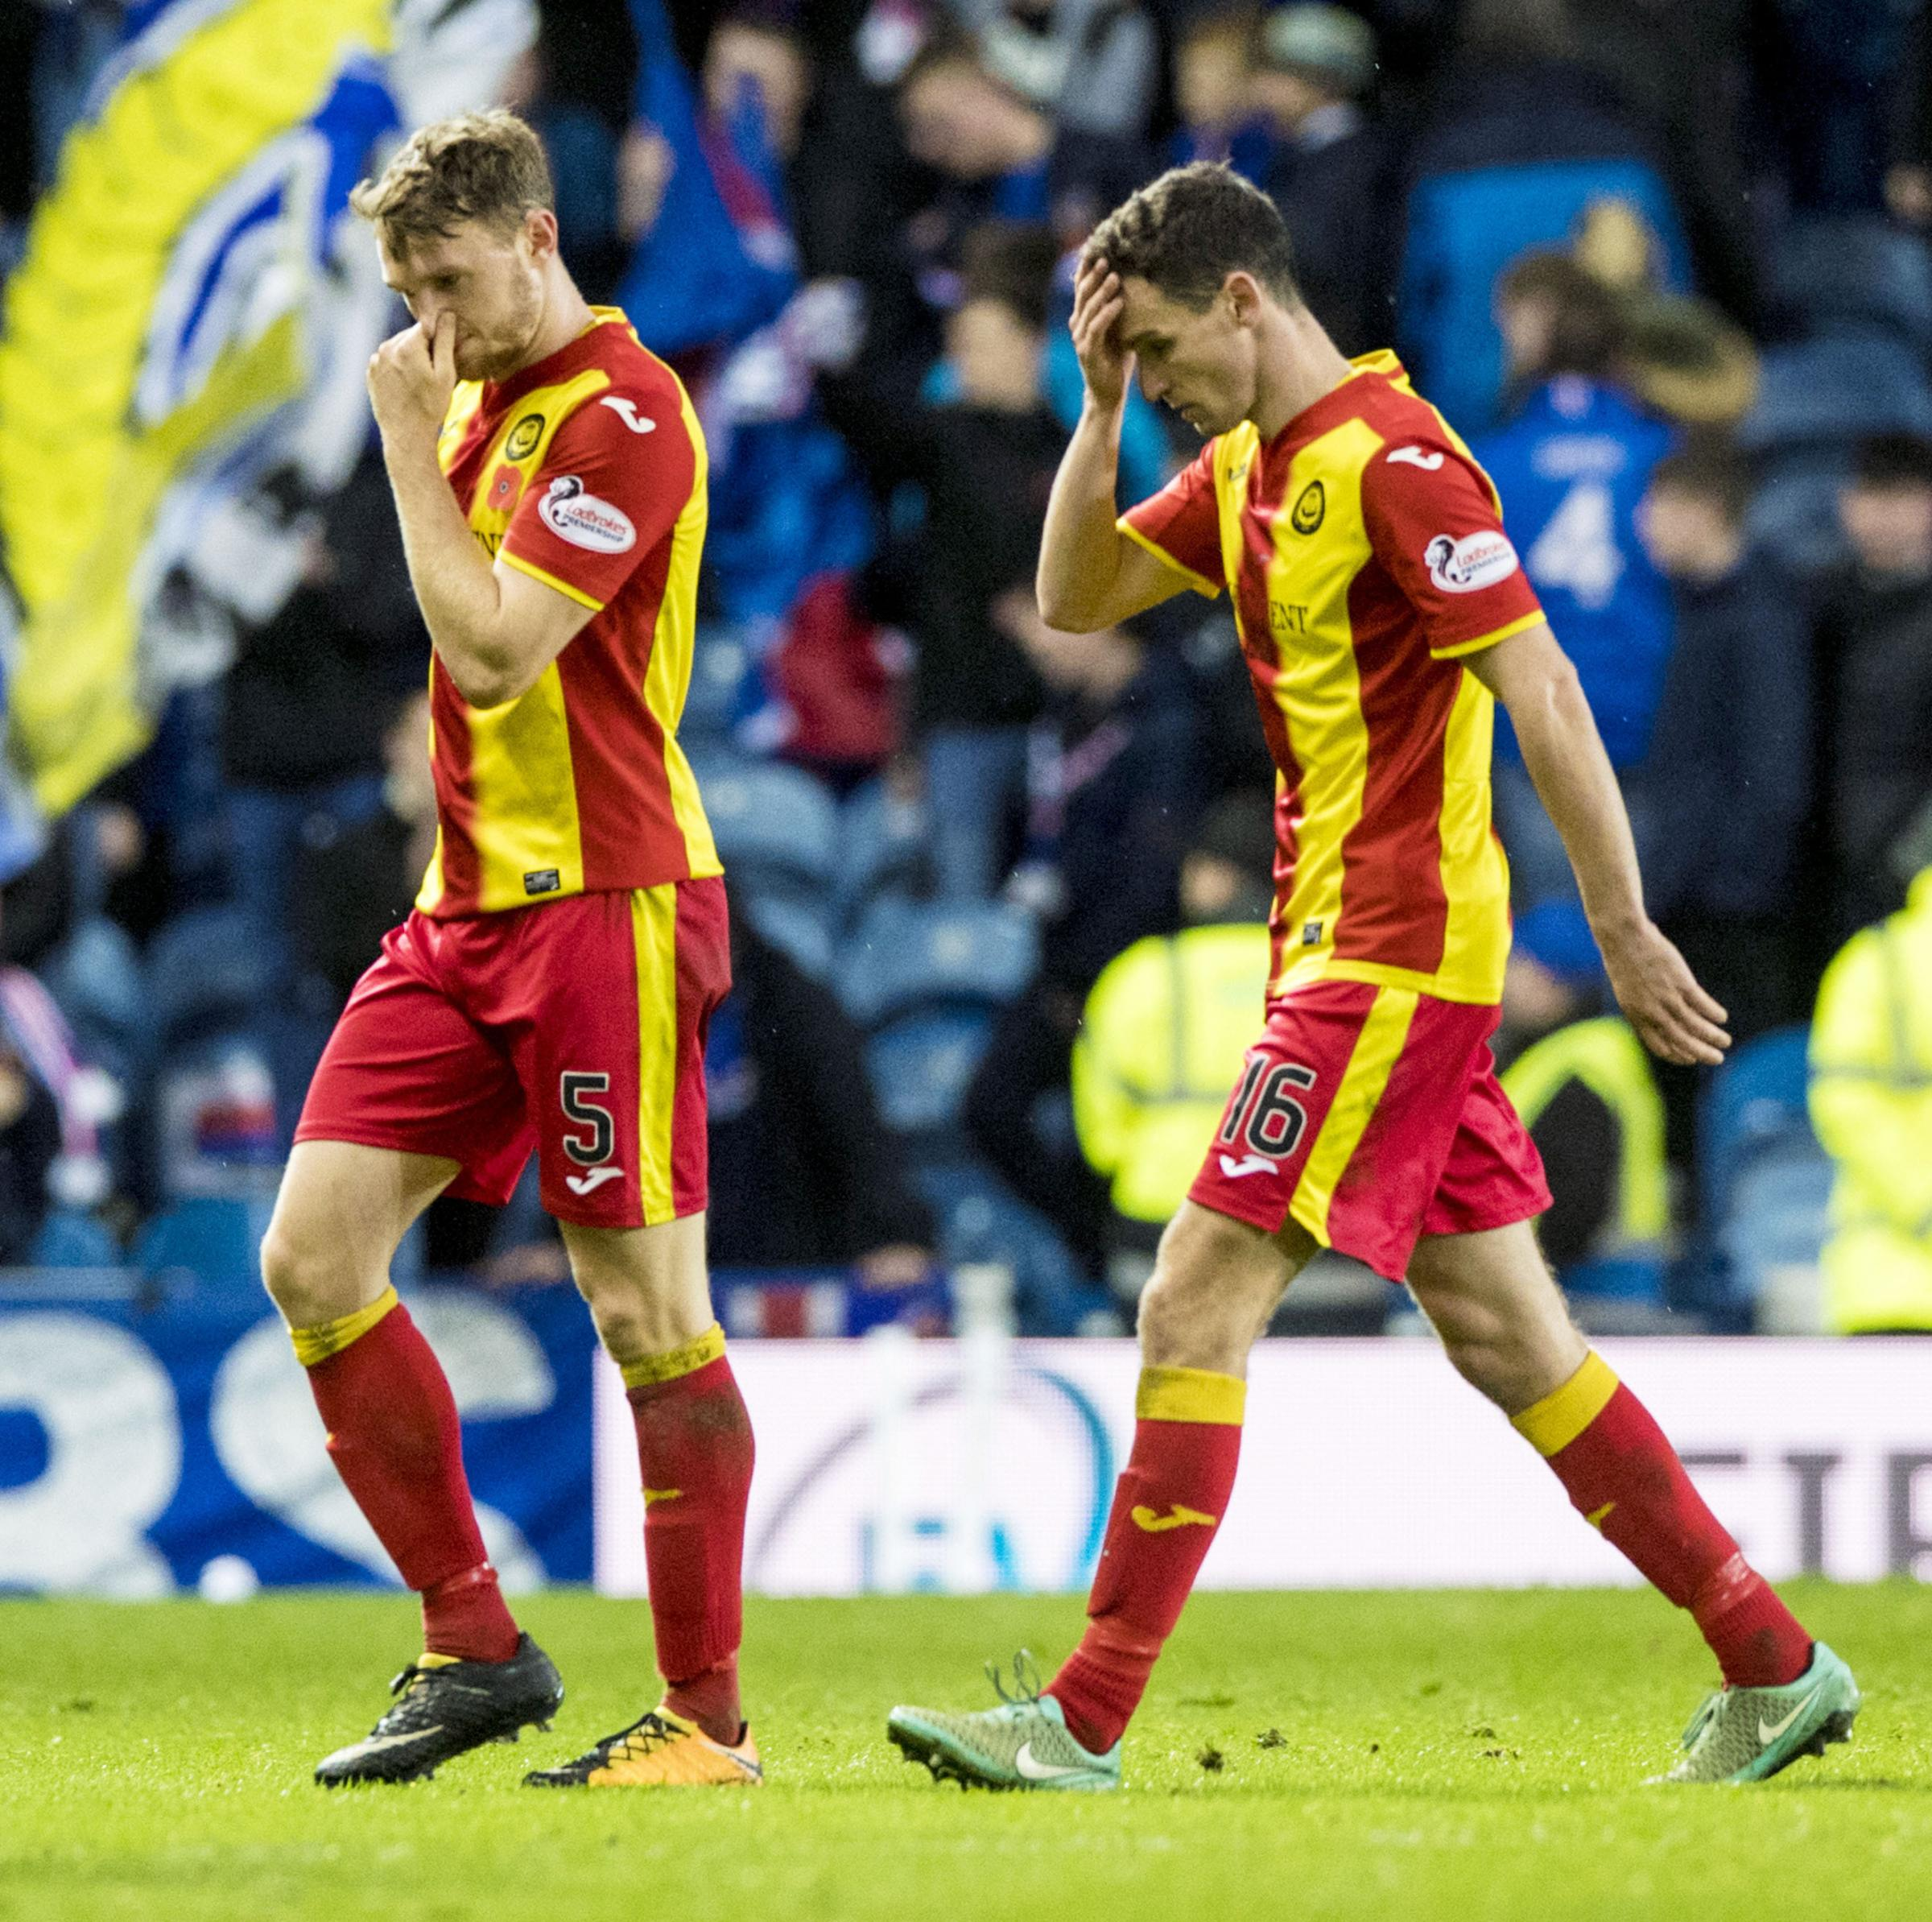 04/11/17 LADBROKES PREMIERSHIP. RANGERS V PARTICK THISTLE (3-0) (3-0). IBROX - GLASGOW. Partick Thistle's Paul McGinn (right) and Niall Keown trudge off the pitch at full time.